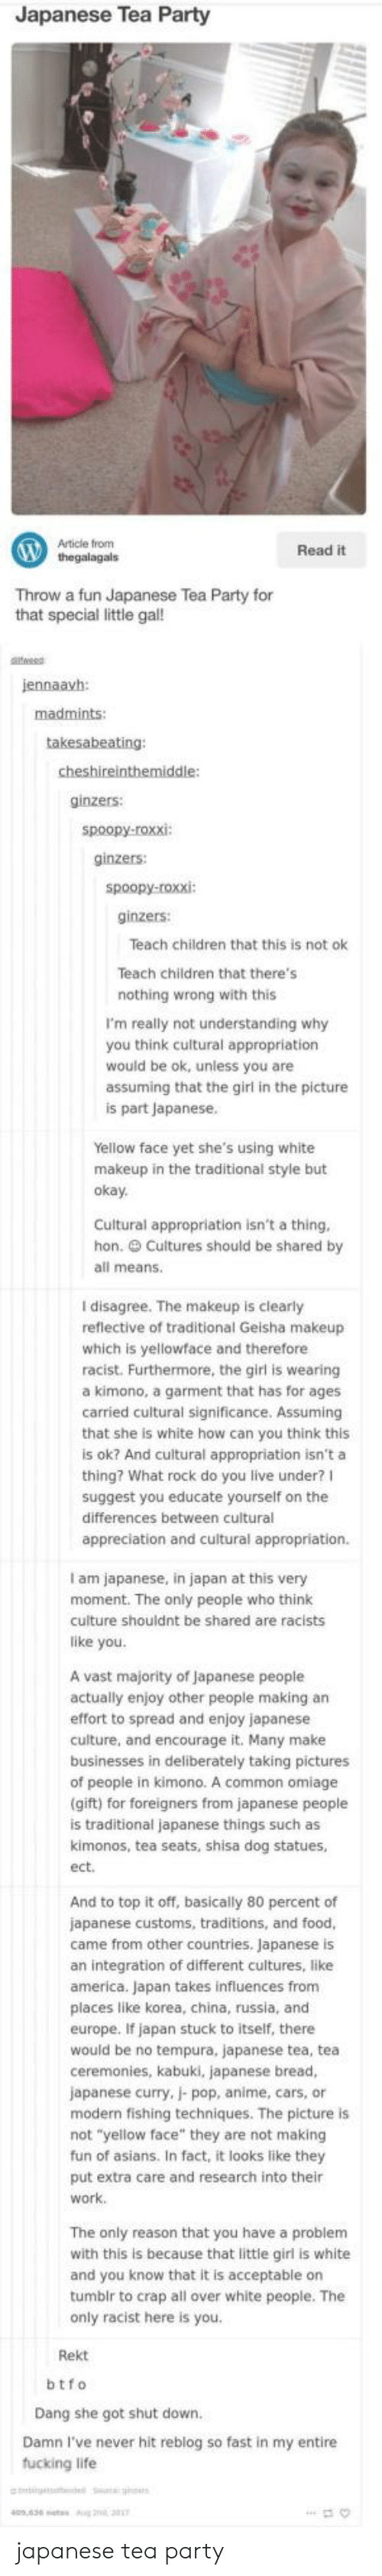 """Btfo: Japanese Tea Party  Article from  thegalagals  Read it  Throw a  Throw a fun Japanese Tea Party for  that special little gal!  jennaavh  ginzers:  ginzers:  ginzers:  Teach children that this is not ok  Teach children that there's  nothing wrong with this  I'm really not understanding why  you think cultural appropriatiorn  would be ok, unless you are  assuming that the girl in the picture  is part Japanese  Yellow face yet she's using white  makeu  p in the traditional style but  oka  Cultural appropriation isn't a thing  hon. Cultures should be shared by  all means.  I disagree. The makeup is clearly  reflective of traditional Geisha makeup  which is yellowface and therefore  racist. Furthermore, the girl is wearing  a kimono, a garment that has for ages  carried cultural significance. Assuming  that she is white how can you think this  is ok? And cultural appropriation isn't a  thing? What rock do you live under?I  suggest you educate yourself on the  differences between cultural  appreciation and cultural appropriation.  I am japanese, in japan at this very  moment. The only people who think  culture shouldnt be shared are racists  like you.  A vast majority of Japanese people  actually enjoy other people making an  effort to spread and enjoy japanese  culture, and encourage it. Many make  businesses in deliberately taking pictures  of people in kimono. A common omiage  gift) for foreigners from japanese people  is traditional japanese things such as  kimonos, tea seats, shisa dog statues,  ect  And to top it off, basically 80 percent of  japanese customs, traditions, and food  came from other countries. Japanese is  an integration of different cultures, like  america. Japan takes influences from  places like korea, china, russia, and  europe. If japan stuck to itself, there  would be no tempura, japanese tea, tea  ceremonies, kabuki, japanese bread,  japanese curry, j- pop, anime, cars, or  modern fishing techniques. The picture is  not """"yellow face"""" they"""